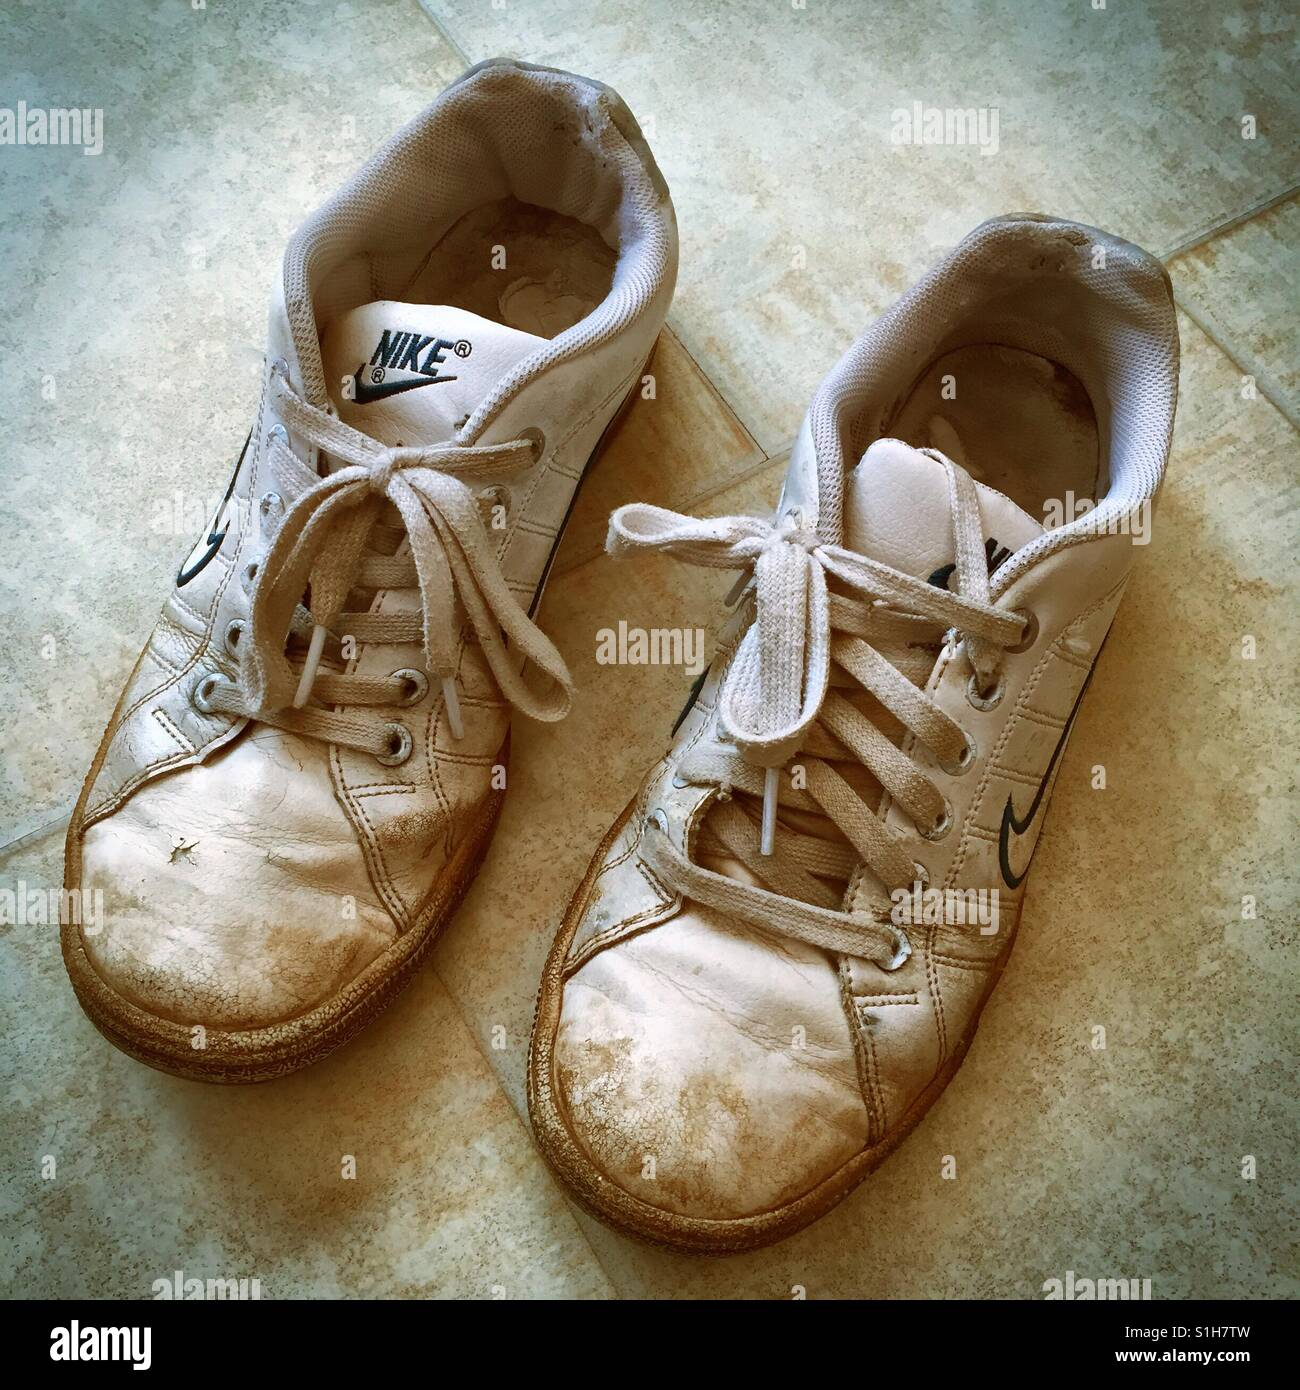 Old dirty worn-out running shoes - Stock Image